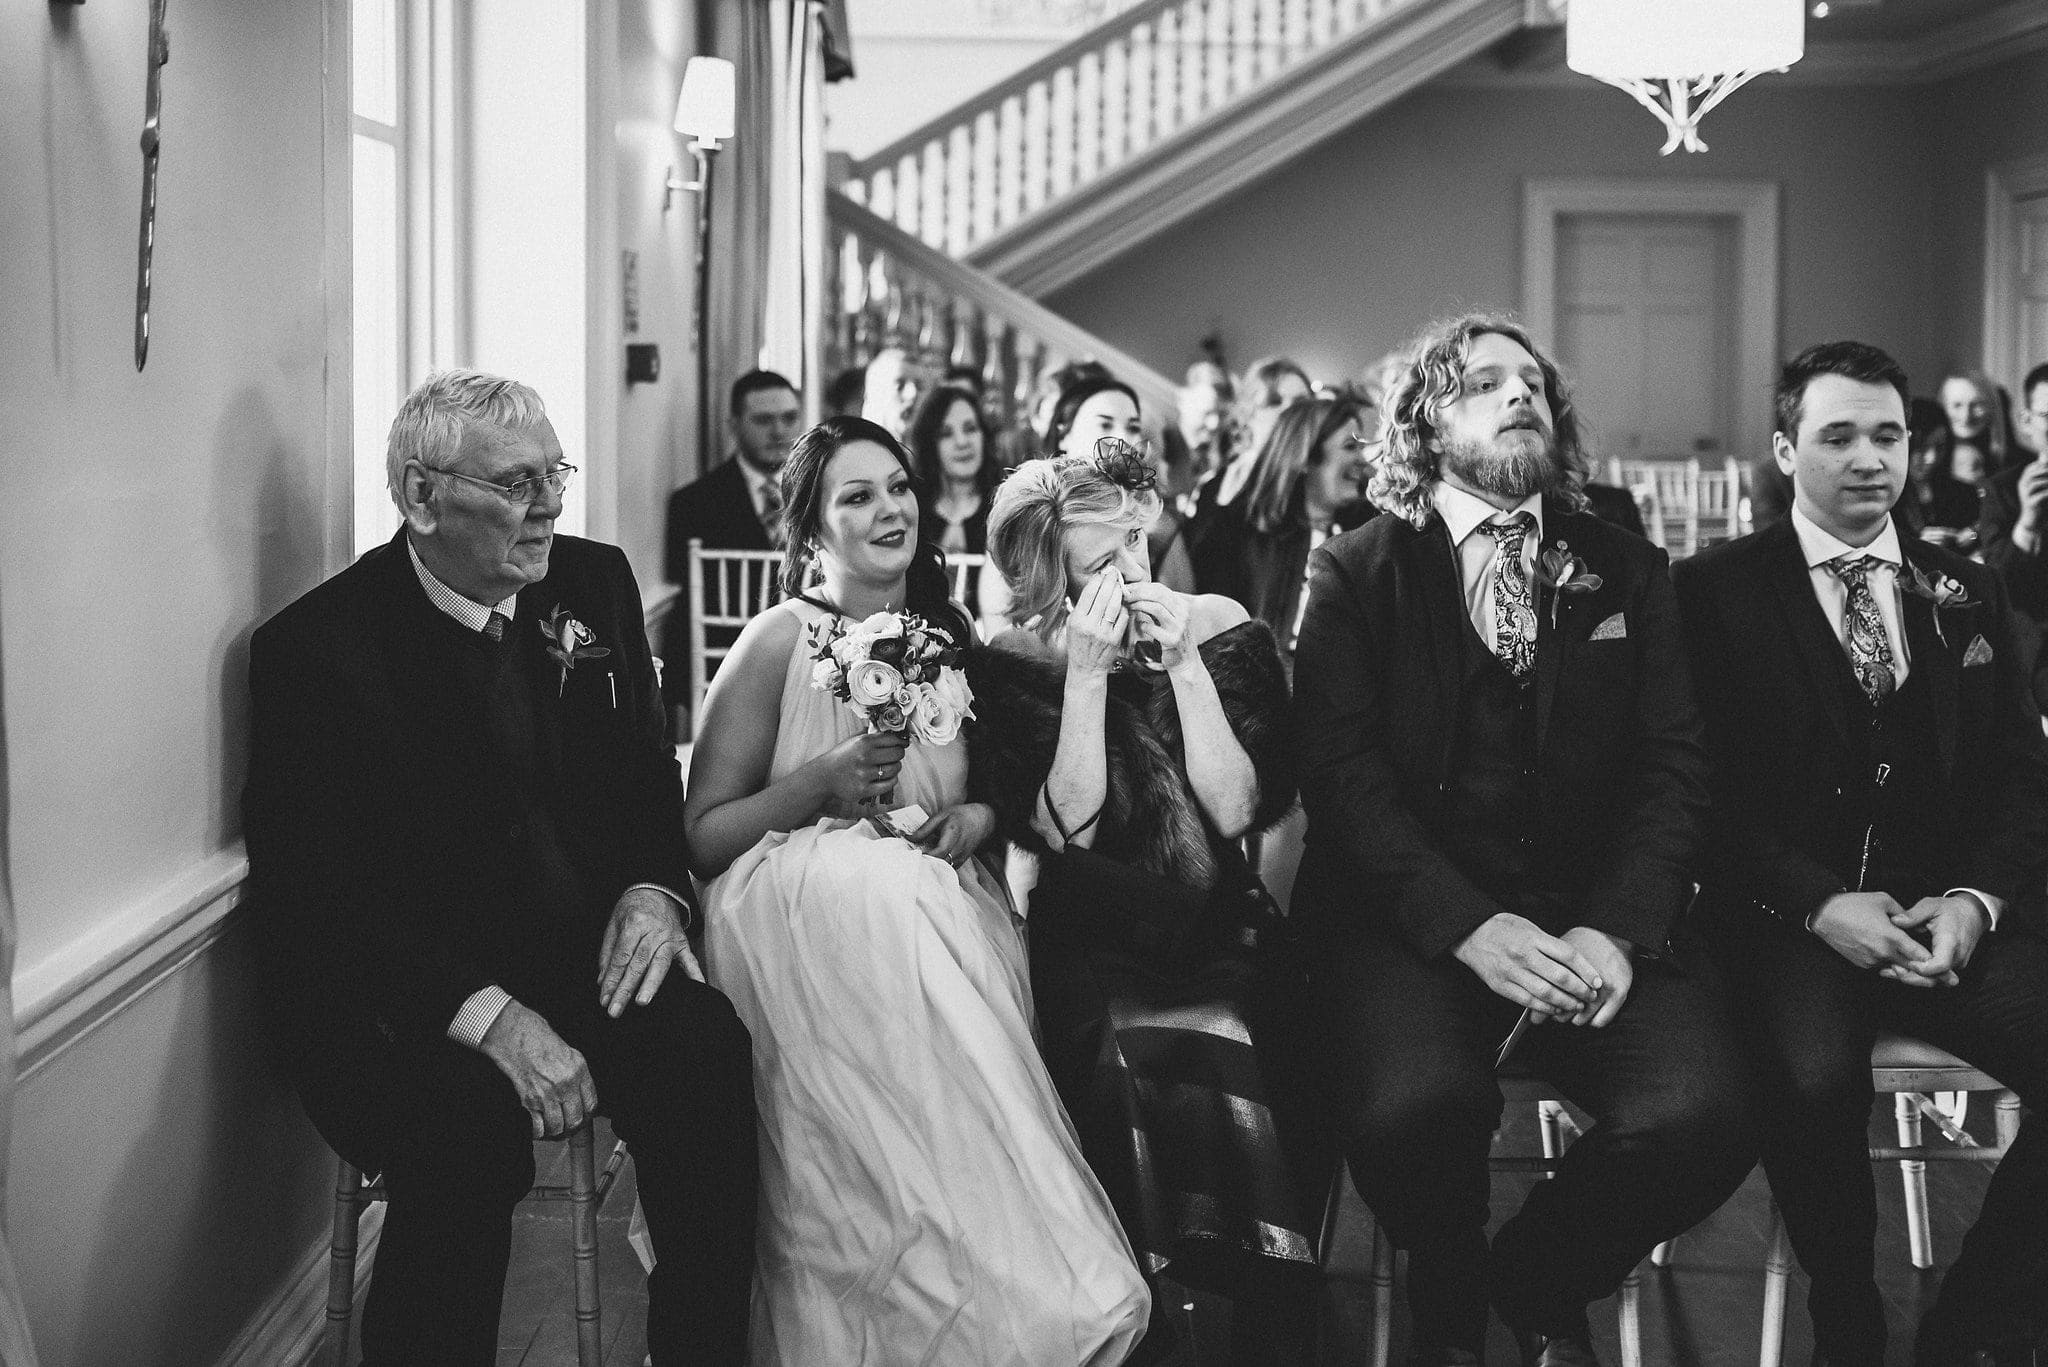 Guests get emotional during wedding ceremony at Morden Hall